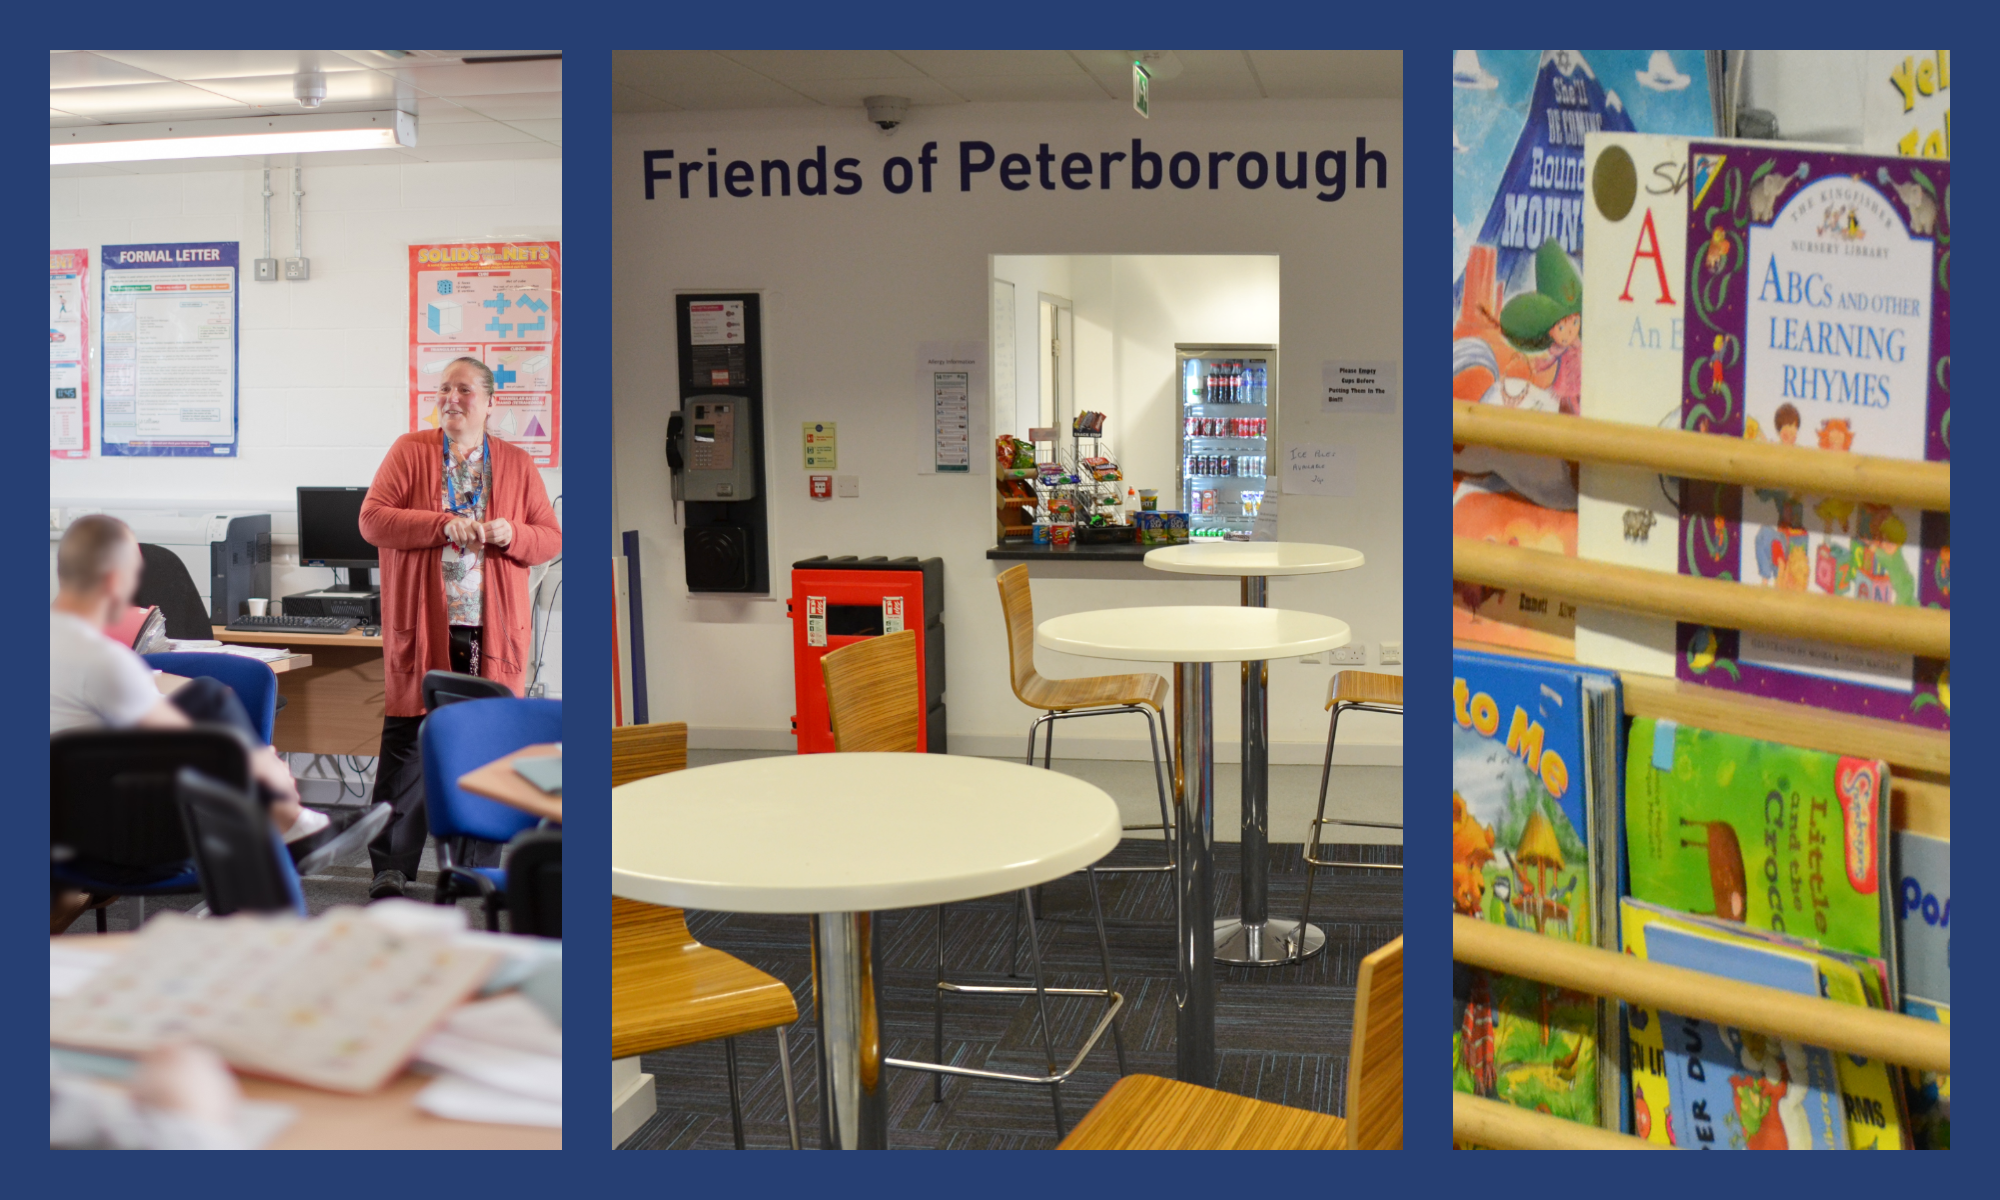 Friends of Peterborough Prison